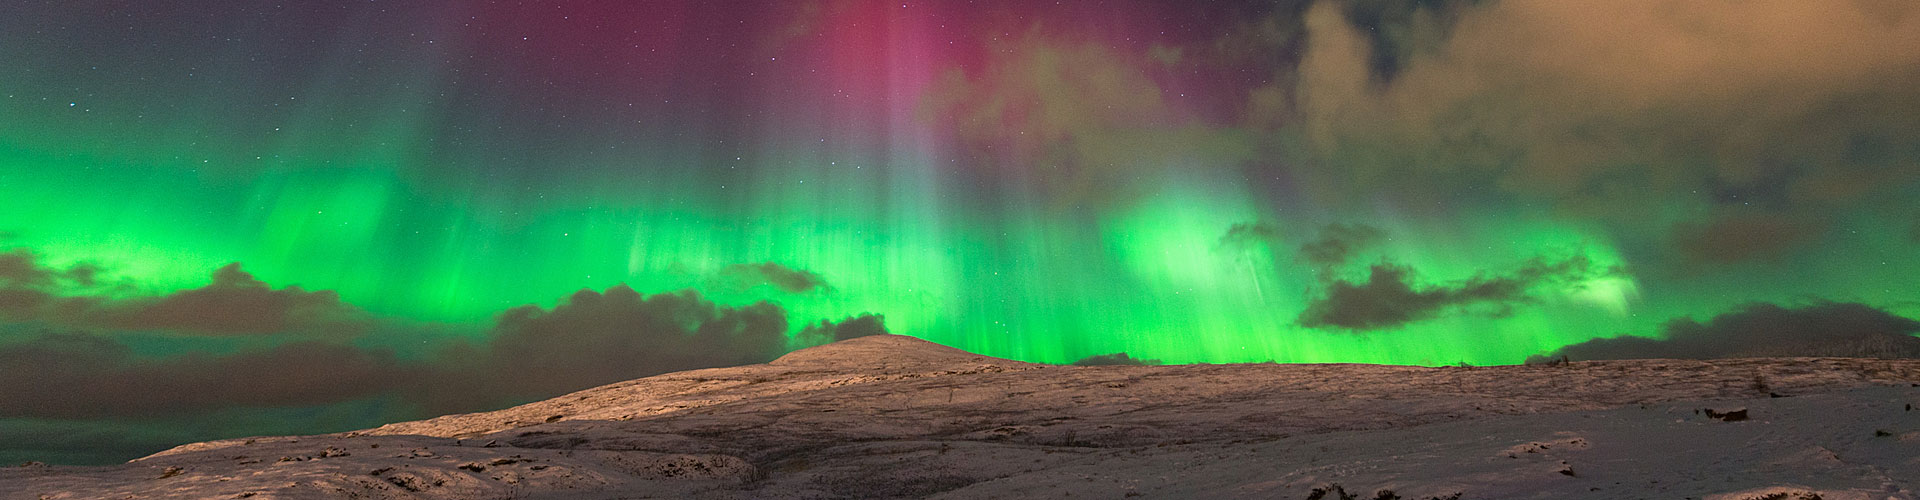 ALTA - THE CITY OF NORTHERN LIGHTS